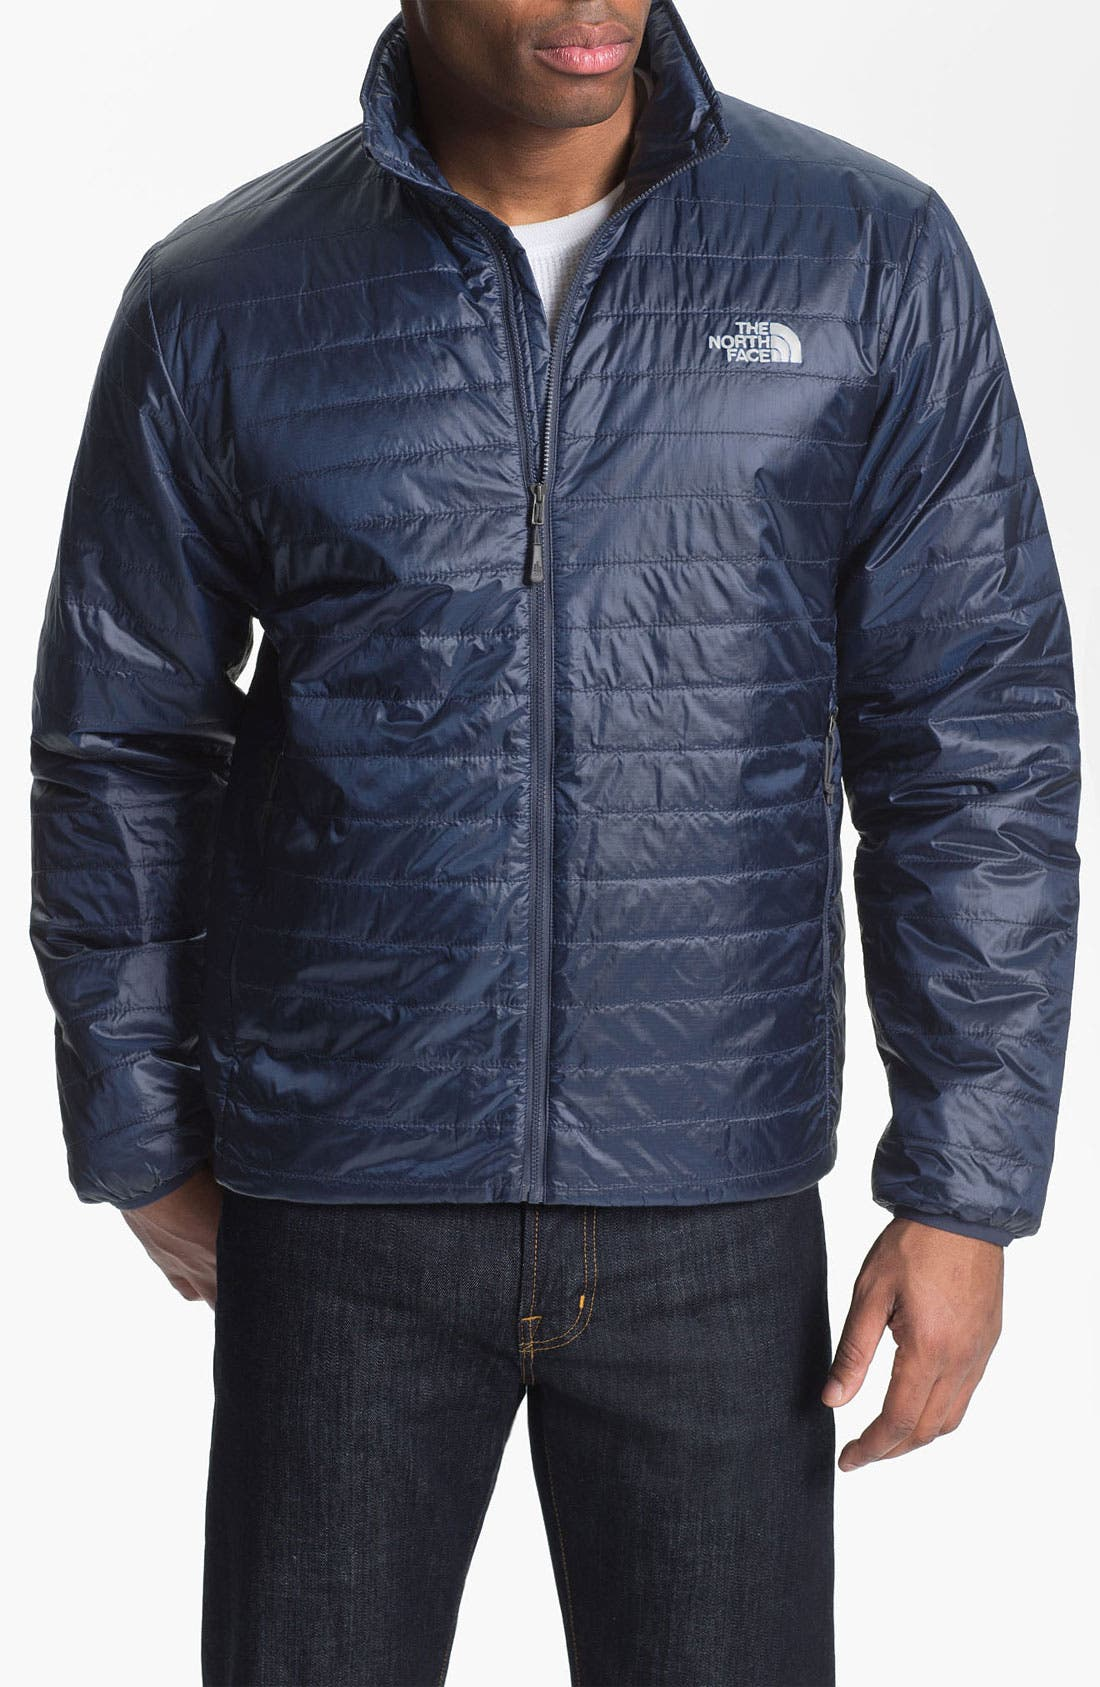 Alternate Image 1 Selected - The North Face 'Blaze' Jacket